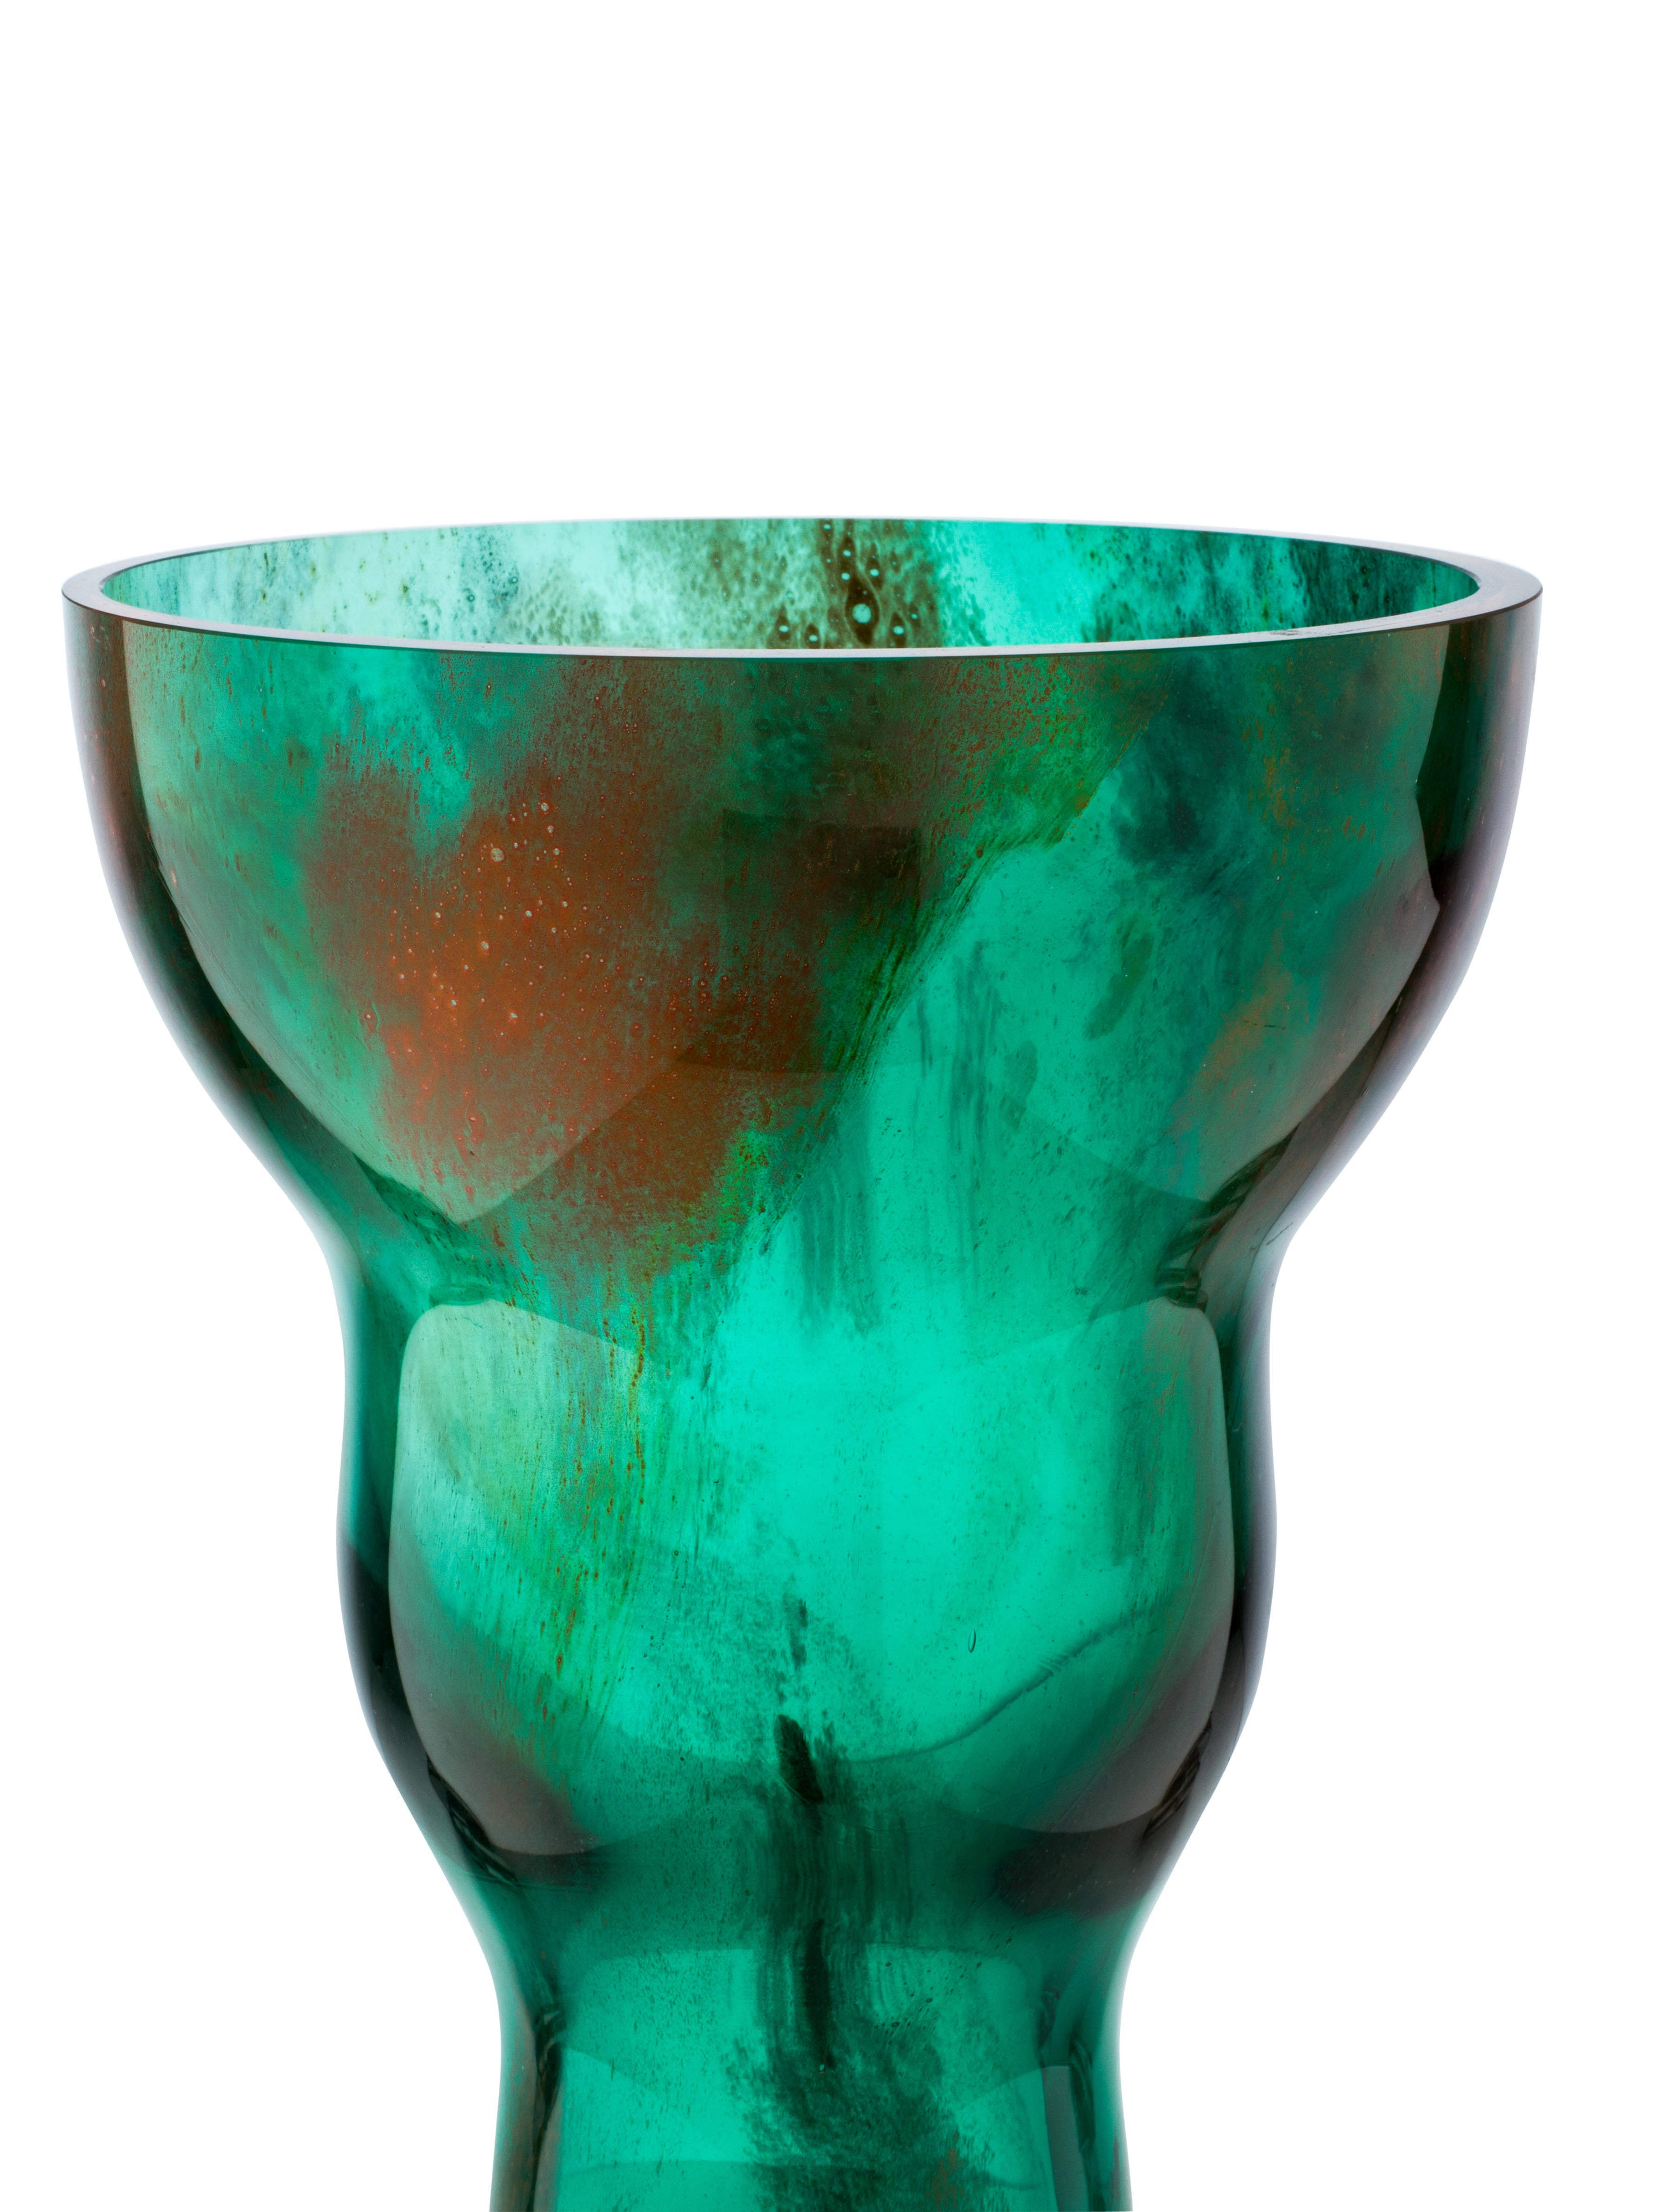 Decorative Glass Product : Abstract glass vase decor and accessories vases